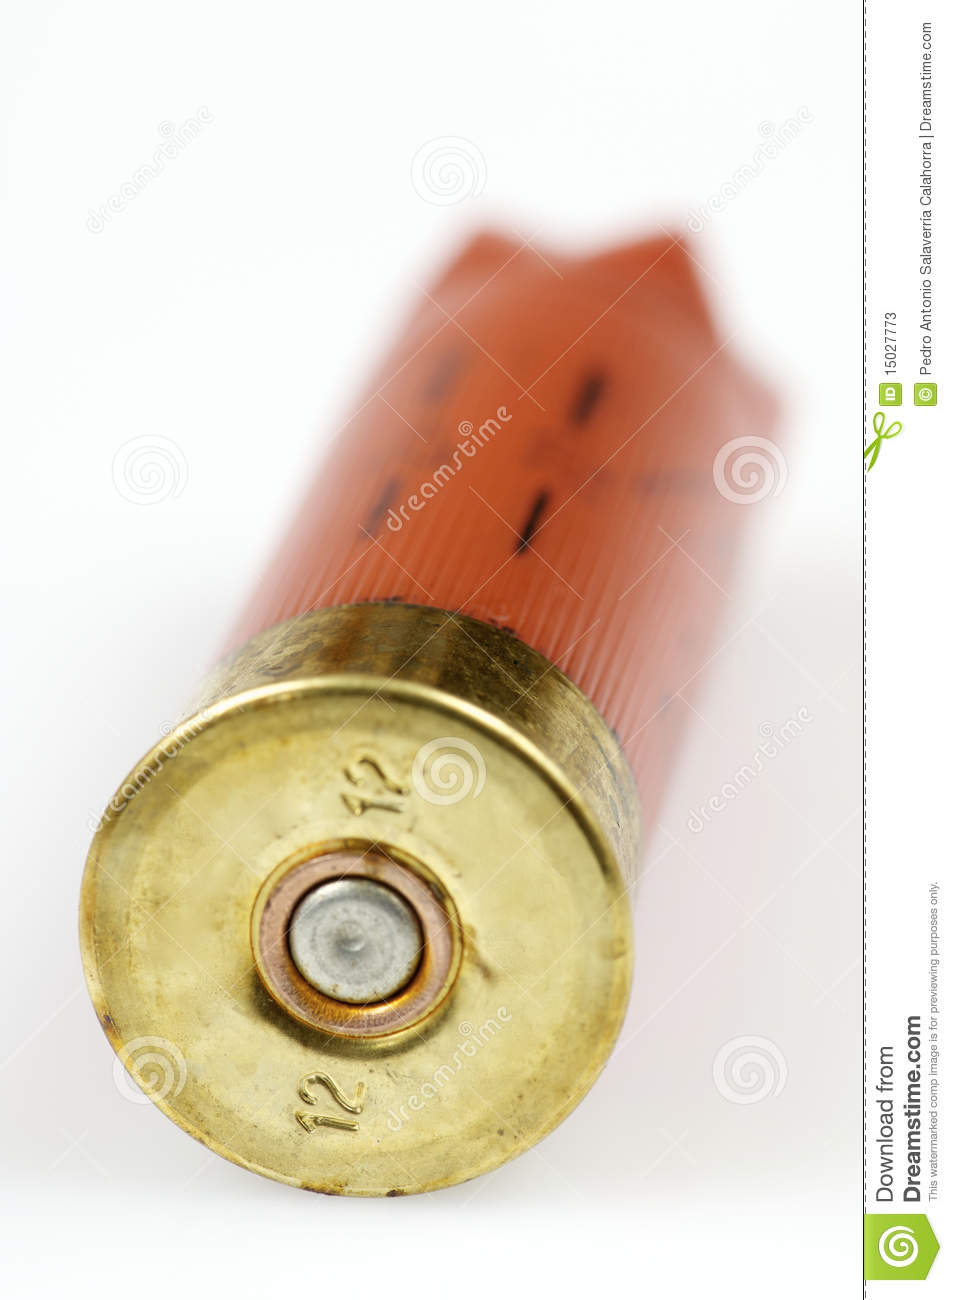 shotgun shell background - photo #28